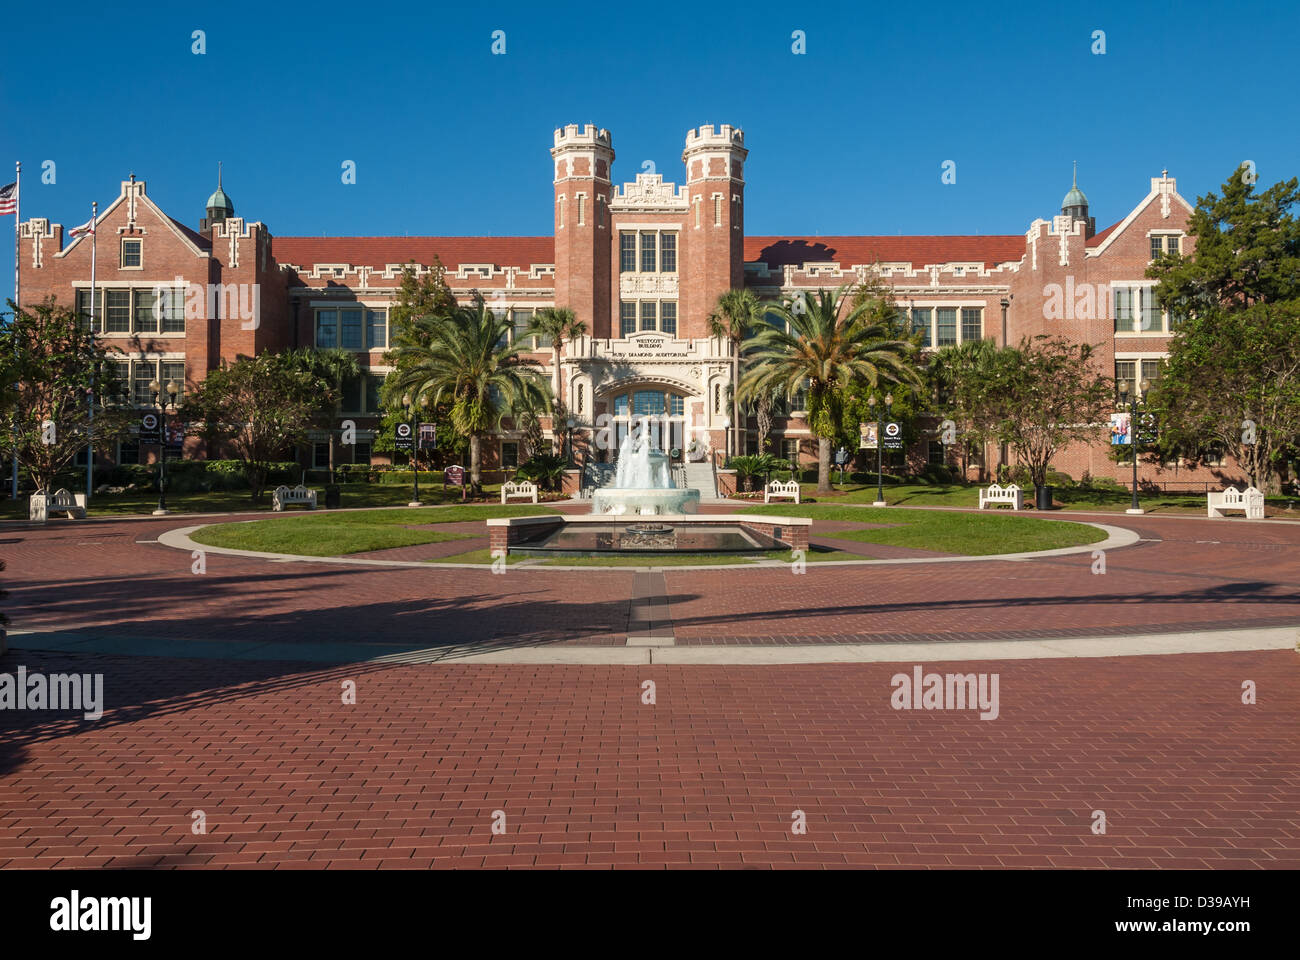 Florida State University's revered Westcott Building and fountain in morning sunlight. Tallahassee, Florida, - Stock Image